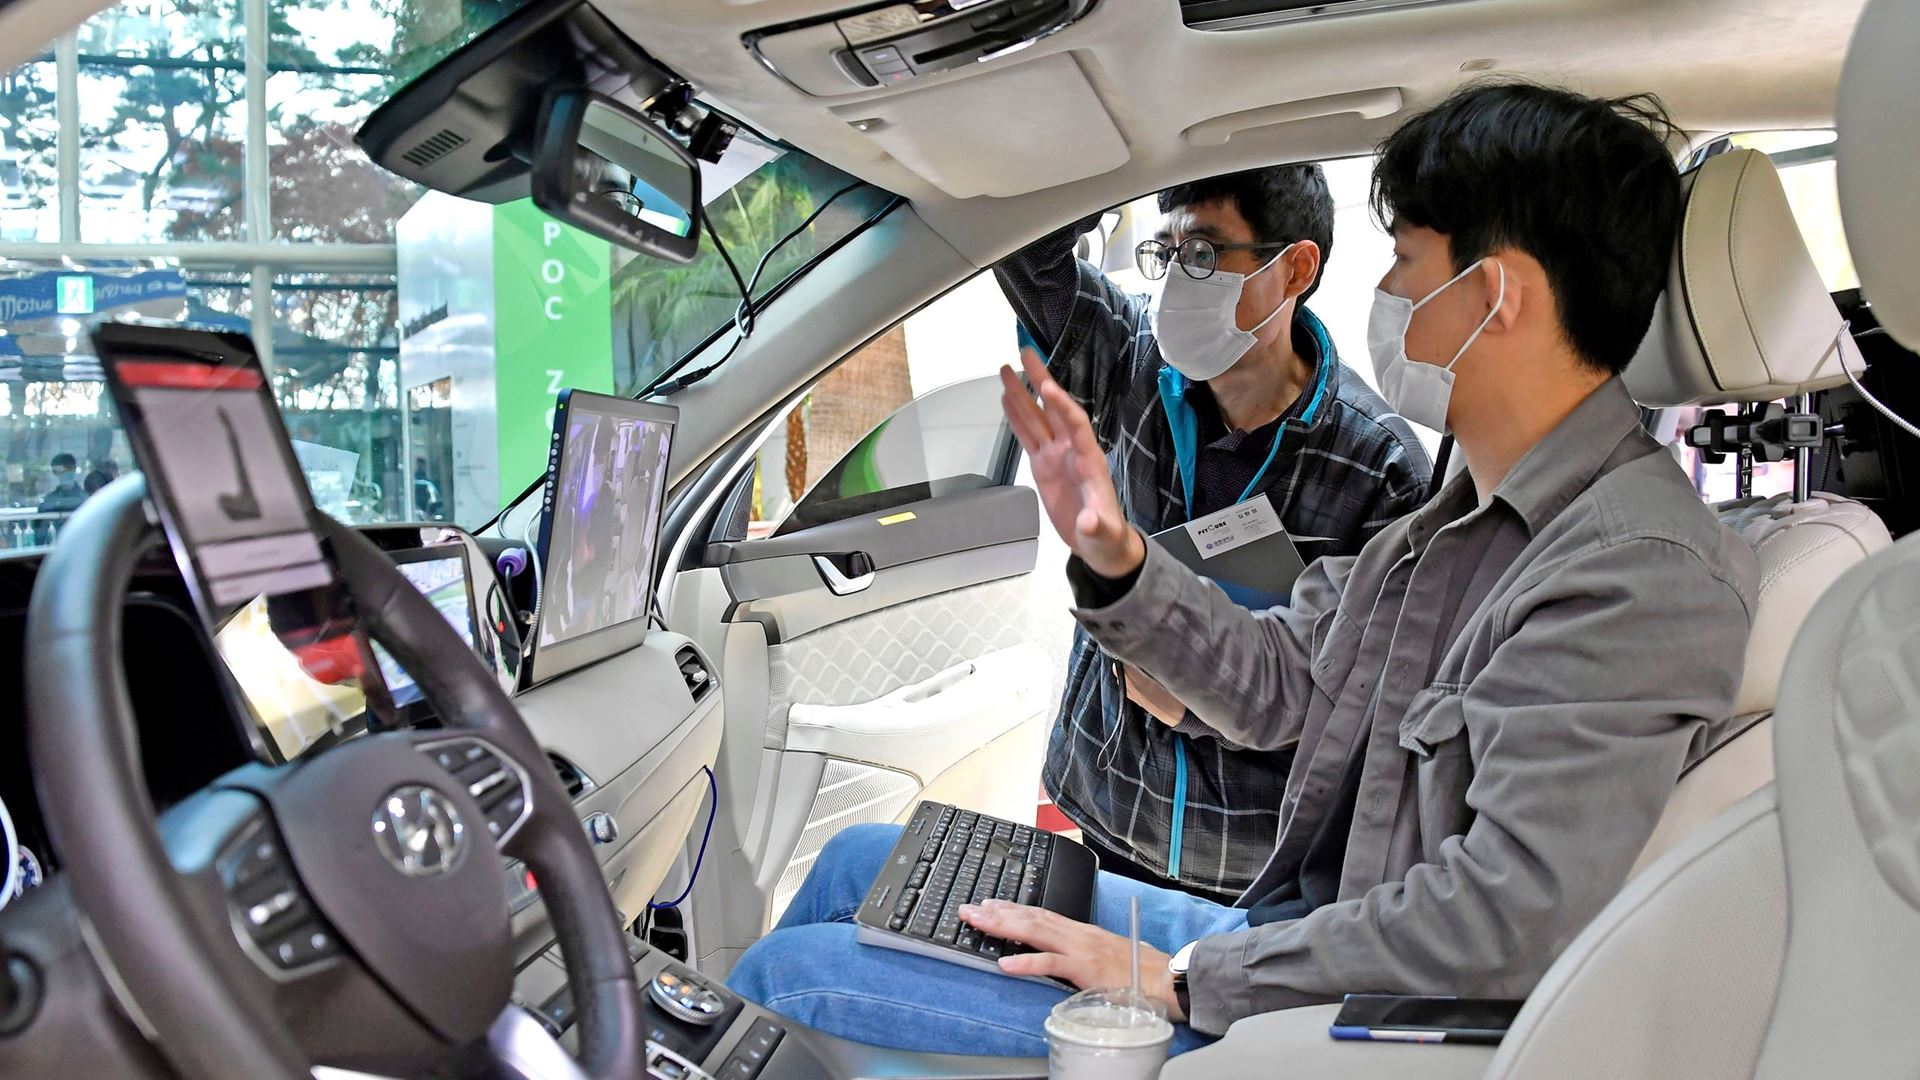 Hyundai Motor Group hosts 2020 Open Innovation Lounge featuring Inventive Startup Technologies - Image 1